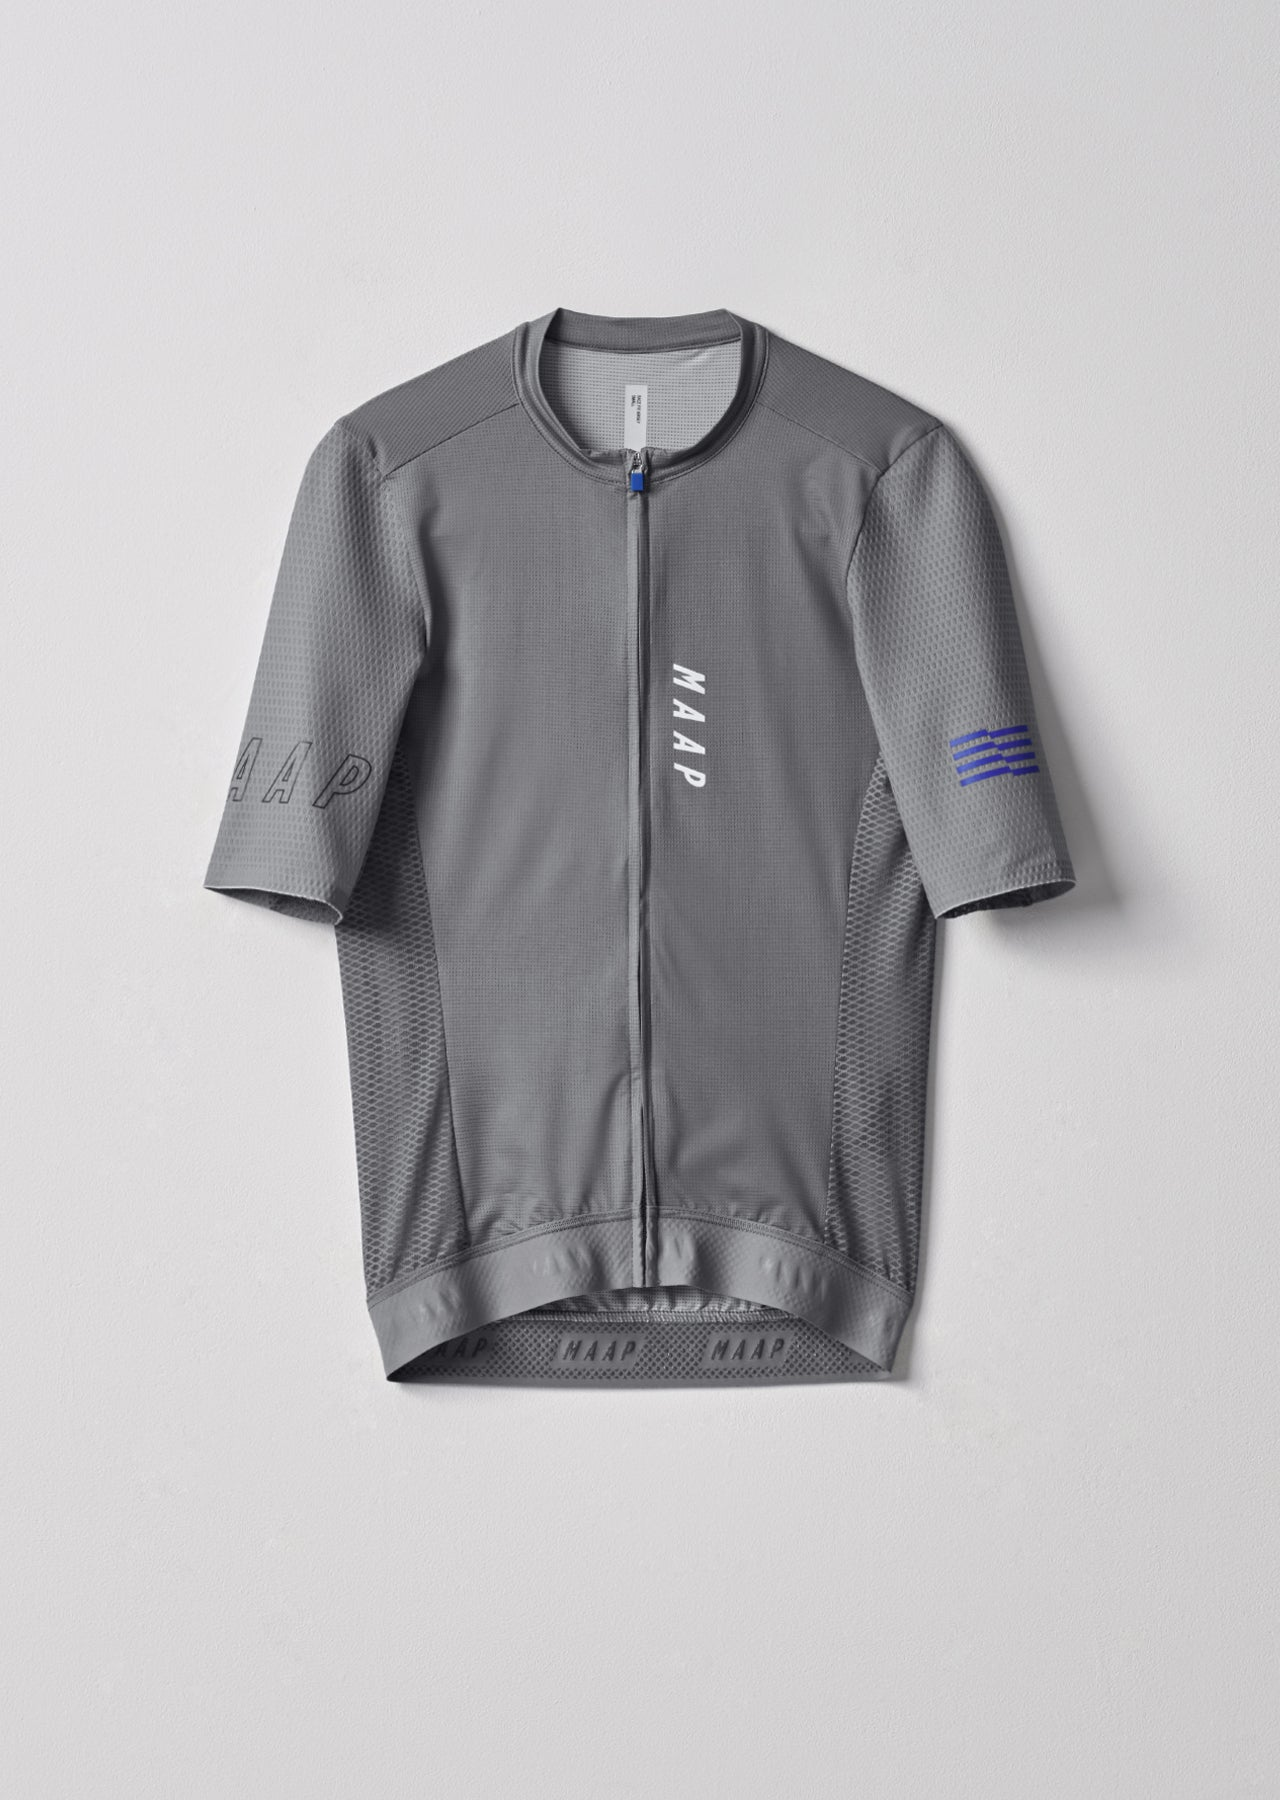 Stealth Race Fit Jersey